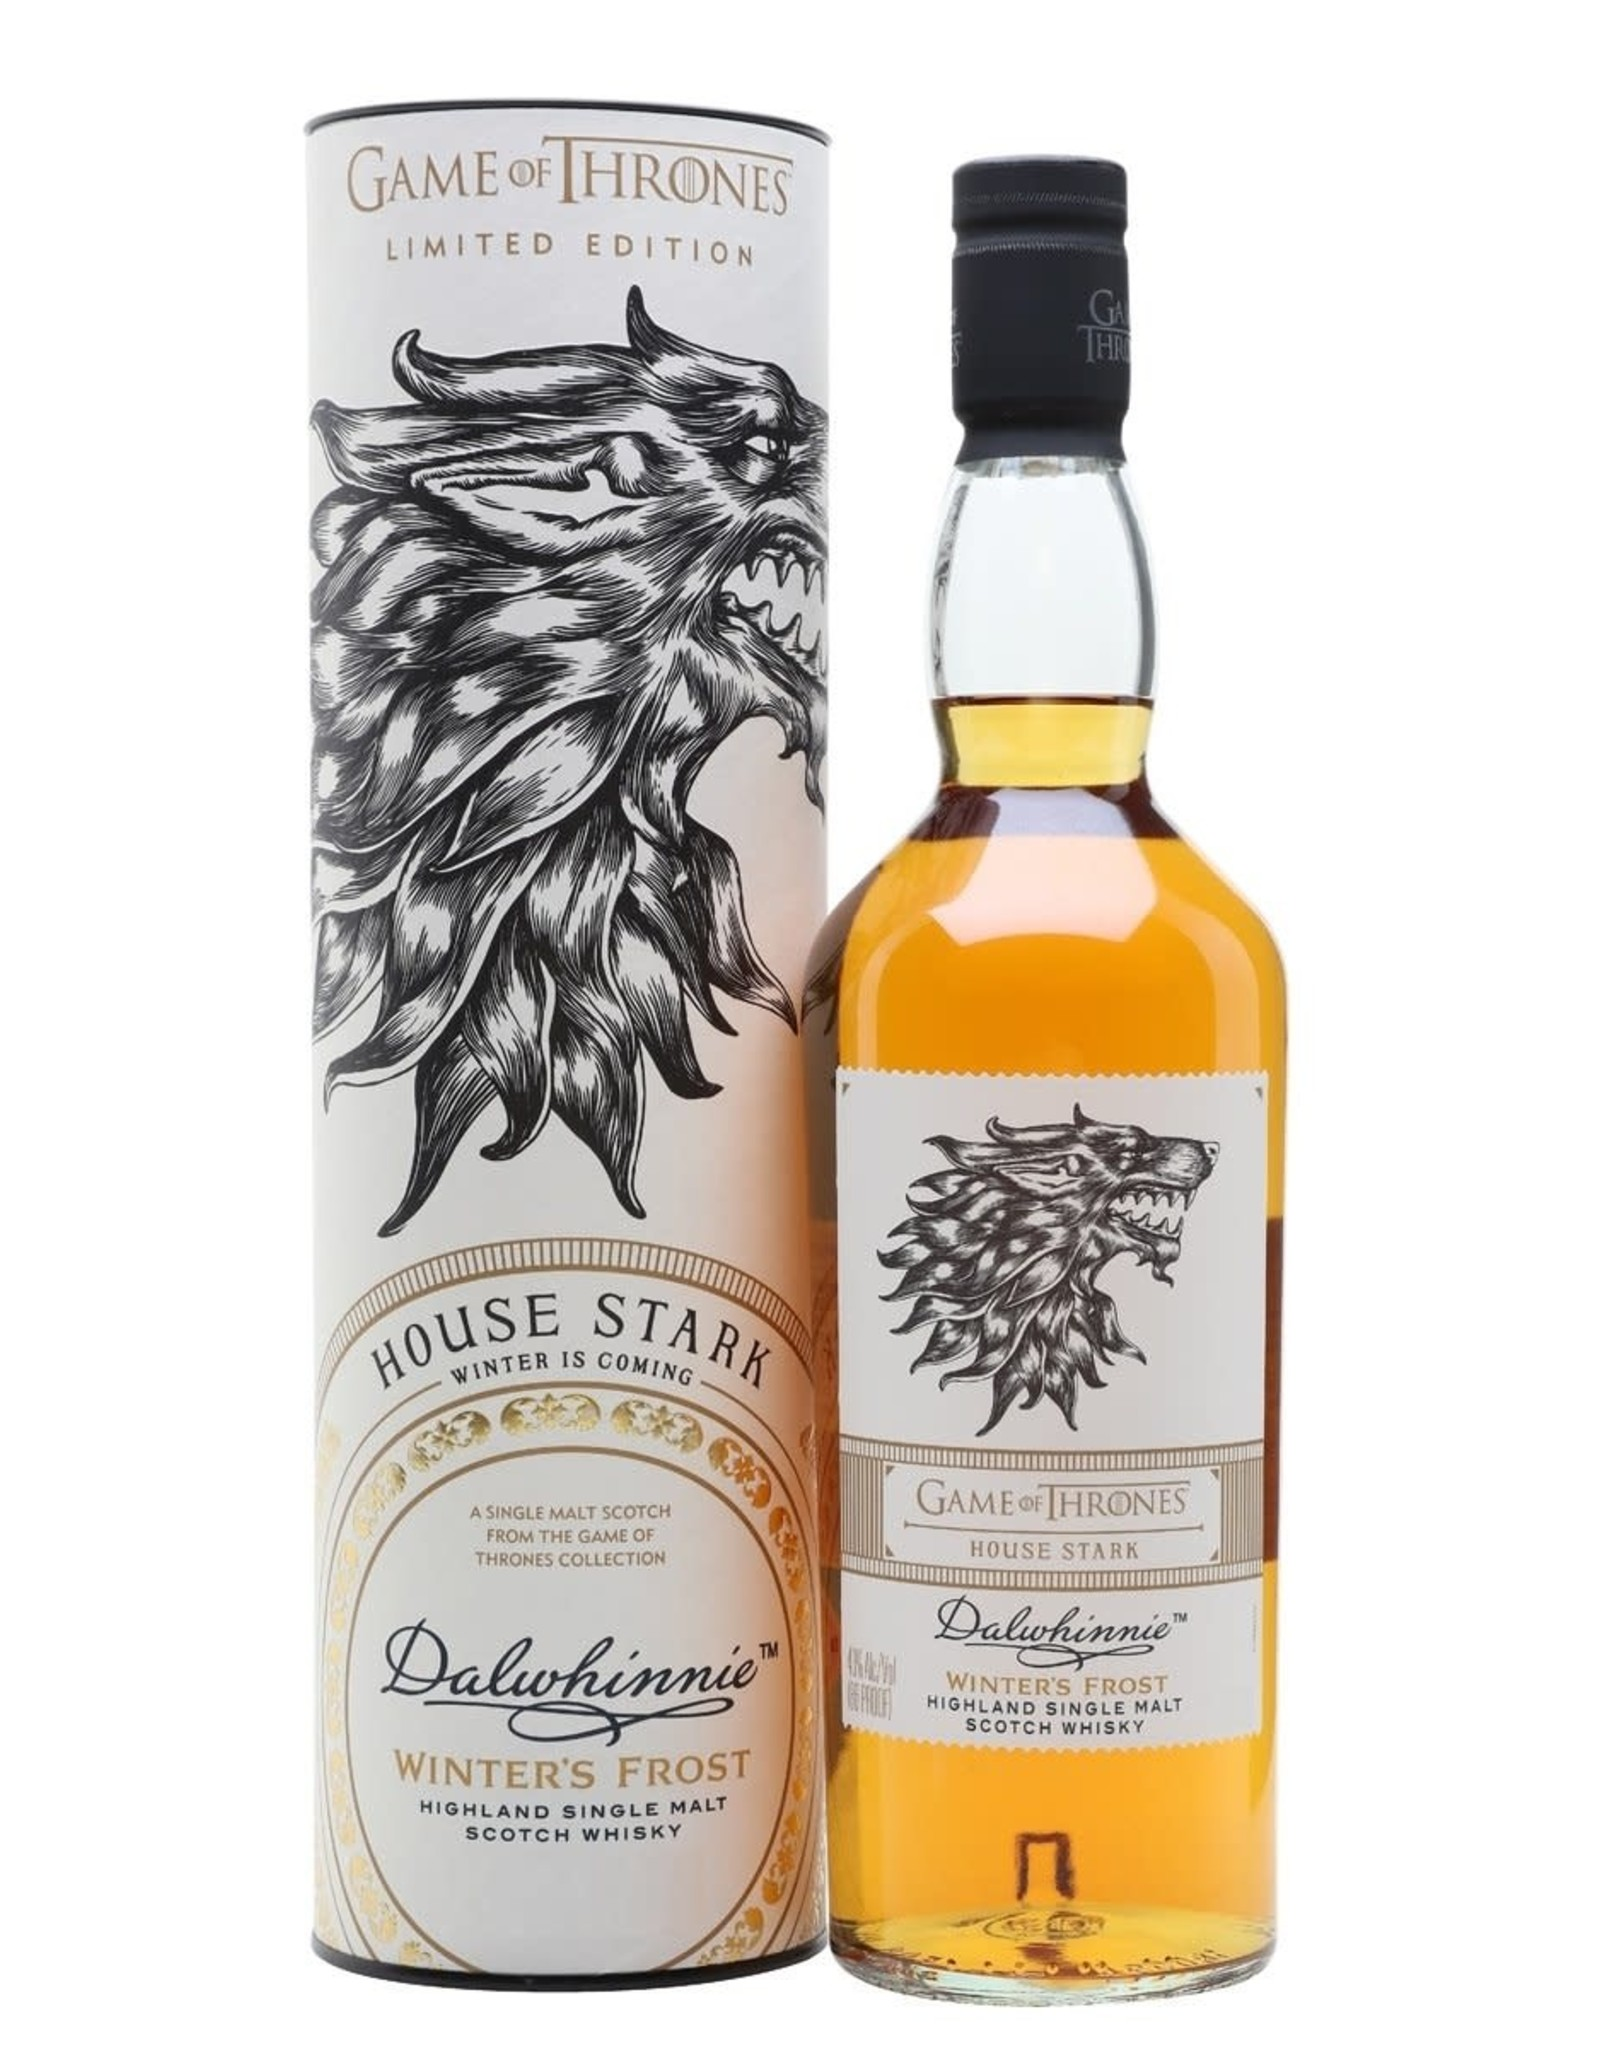 Game of Thrones Limited Edition Dalwhinnie Winter's Frost